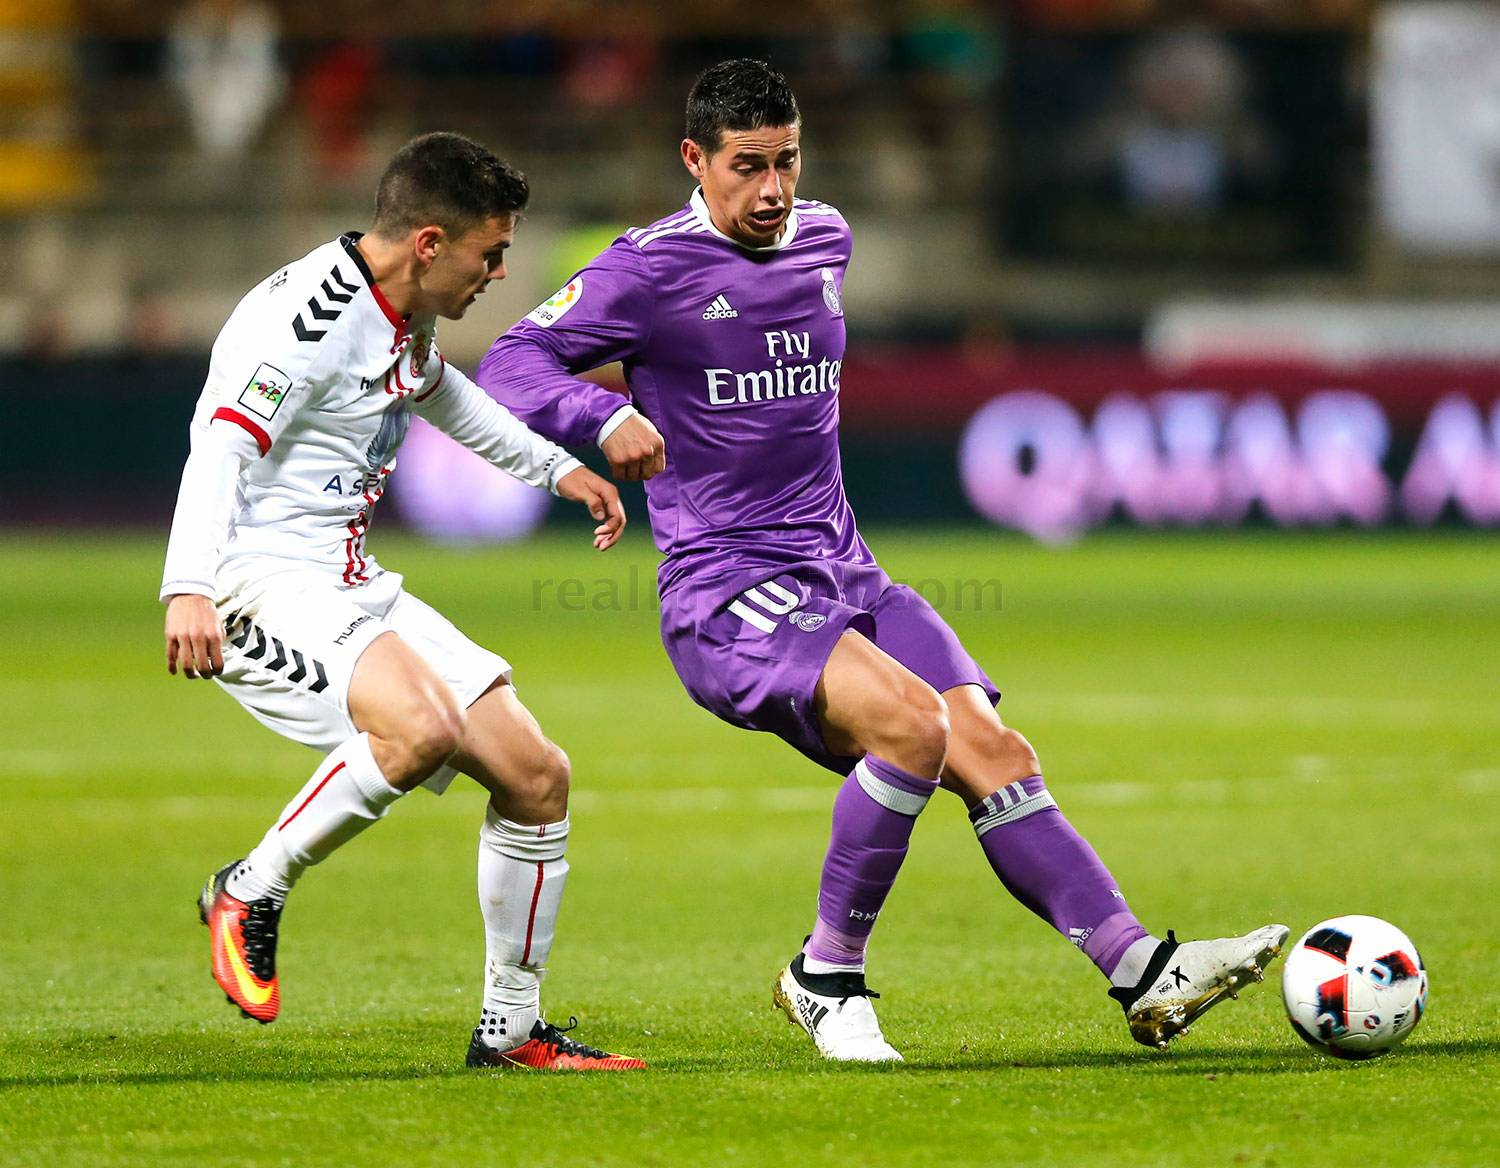 Real Madrid - Cultural y Deportiva Leonesa - Real Madrid - 26-10-2016